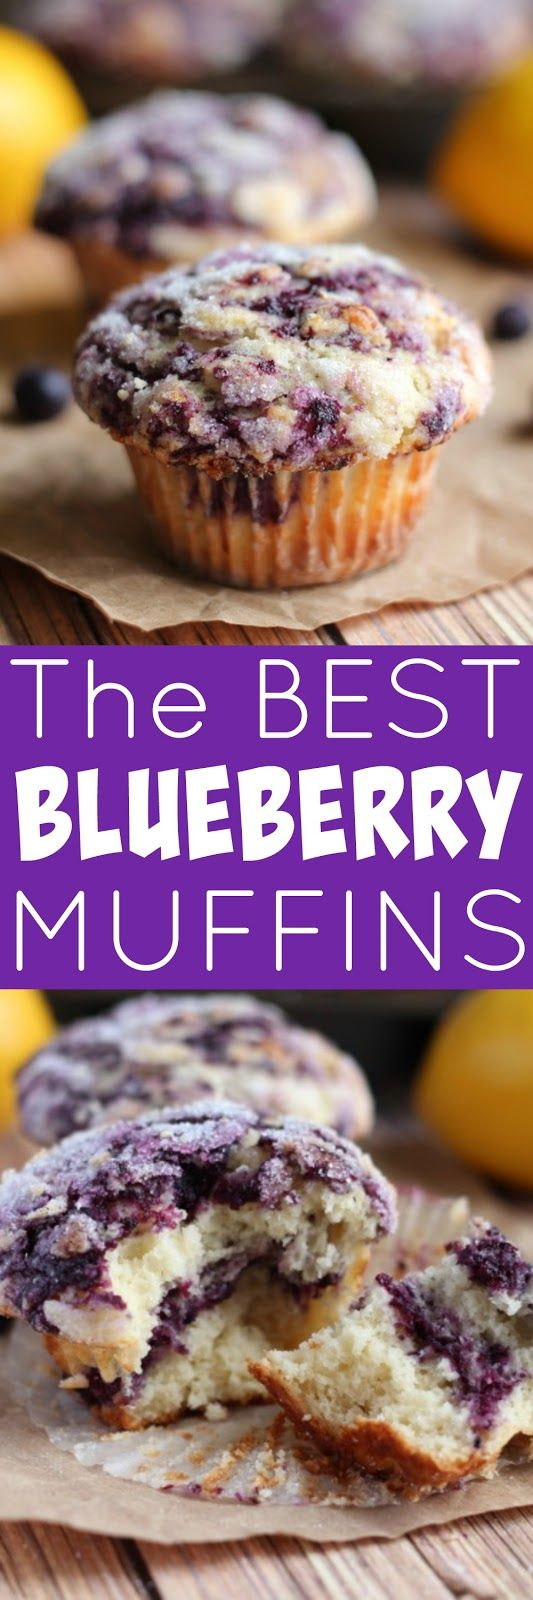 I First Posted This Muffin Recipe Over Three Years Ago It Was Long Overdue For